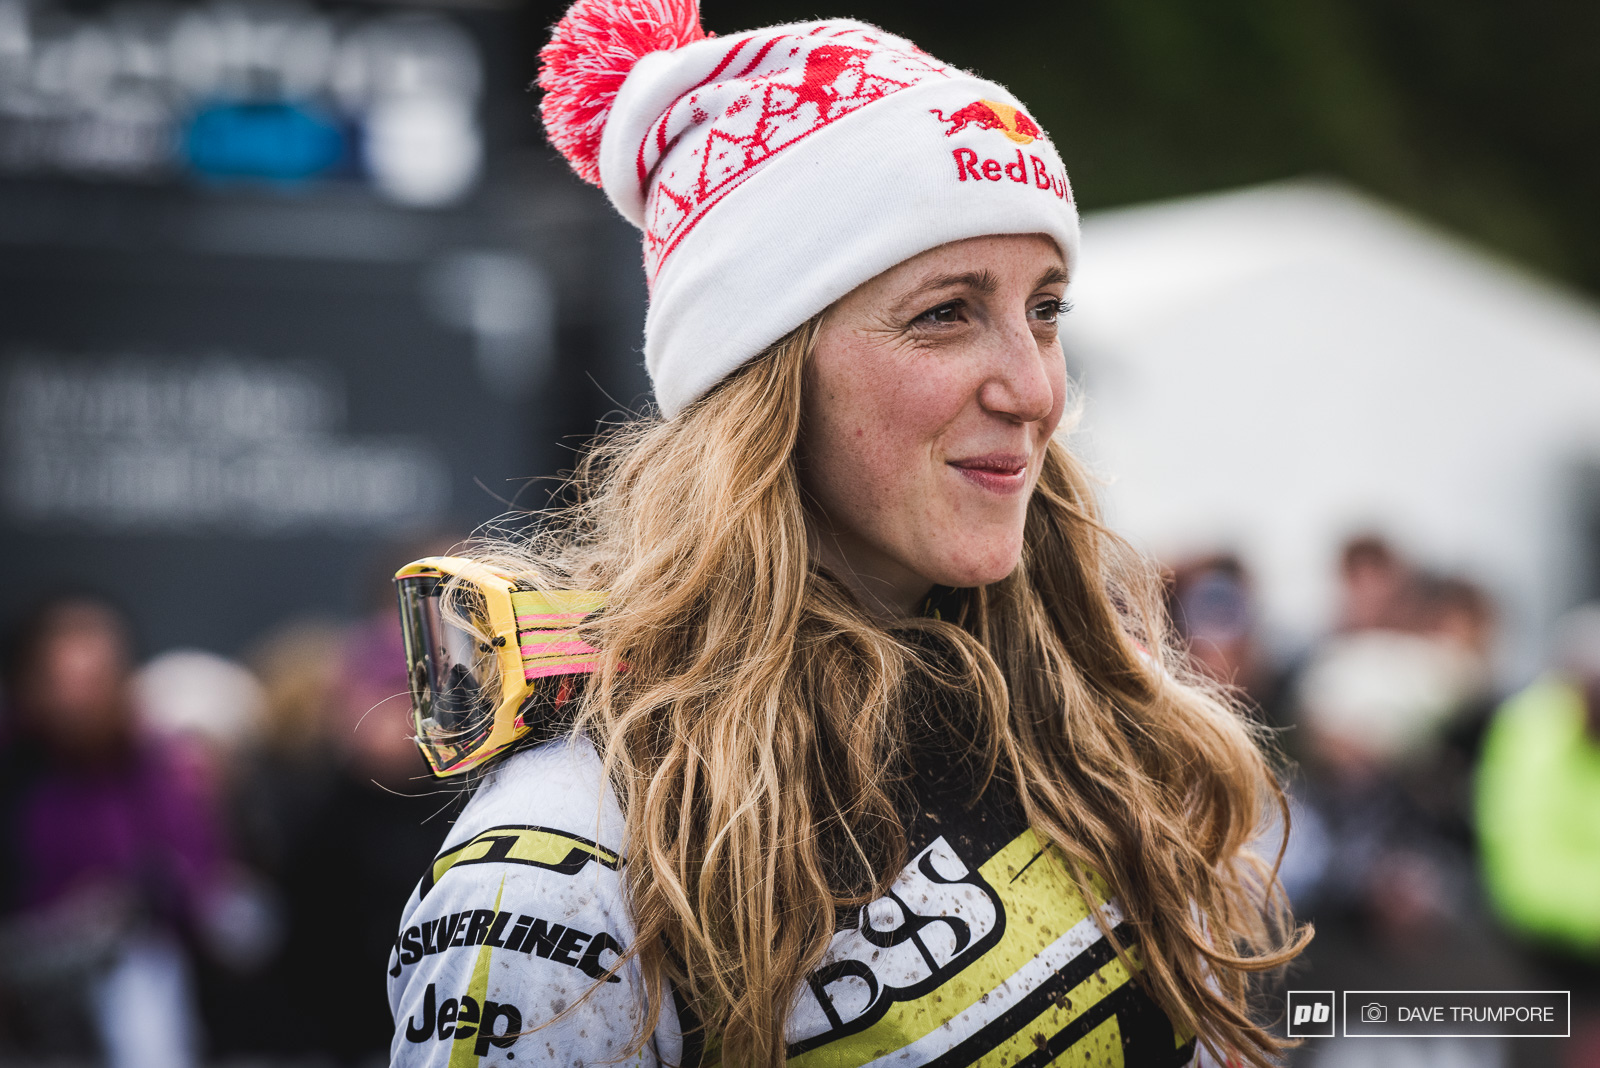 No one gets louder cheers in Fort William than Rachel Atherton.